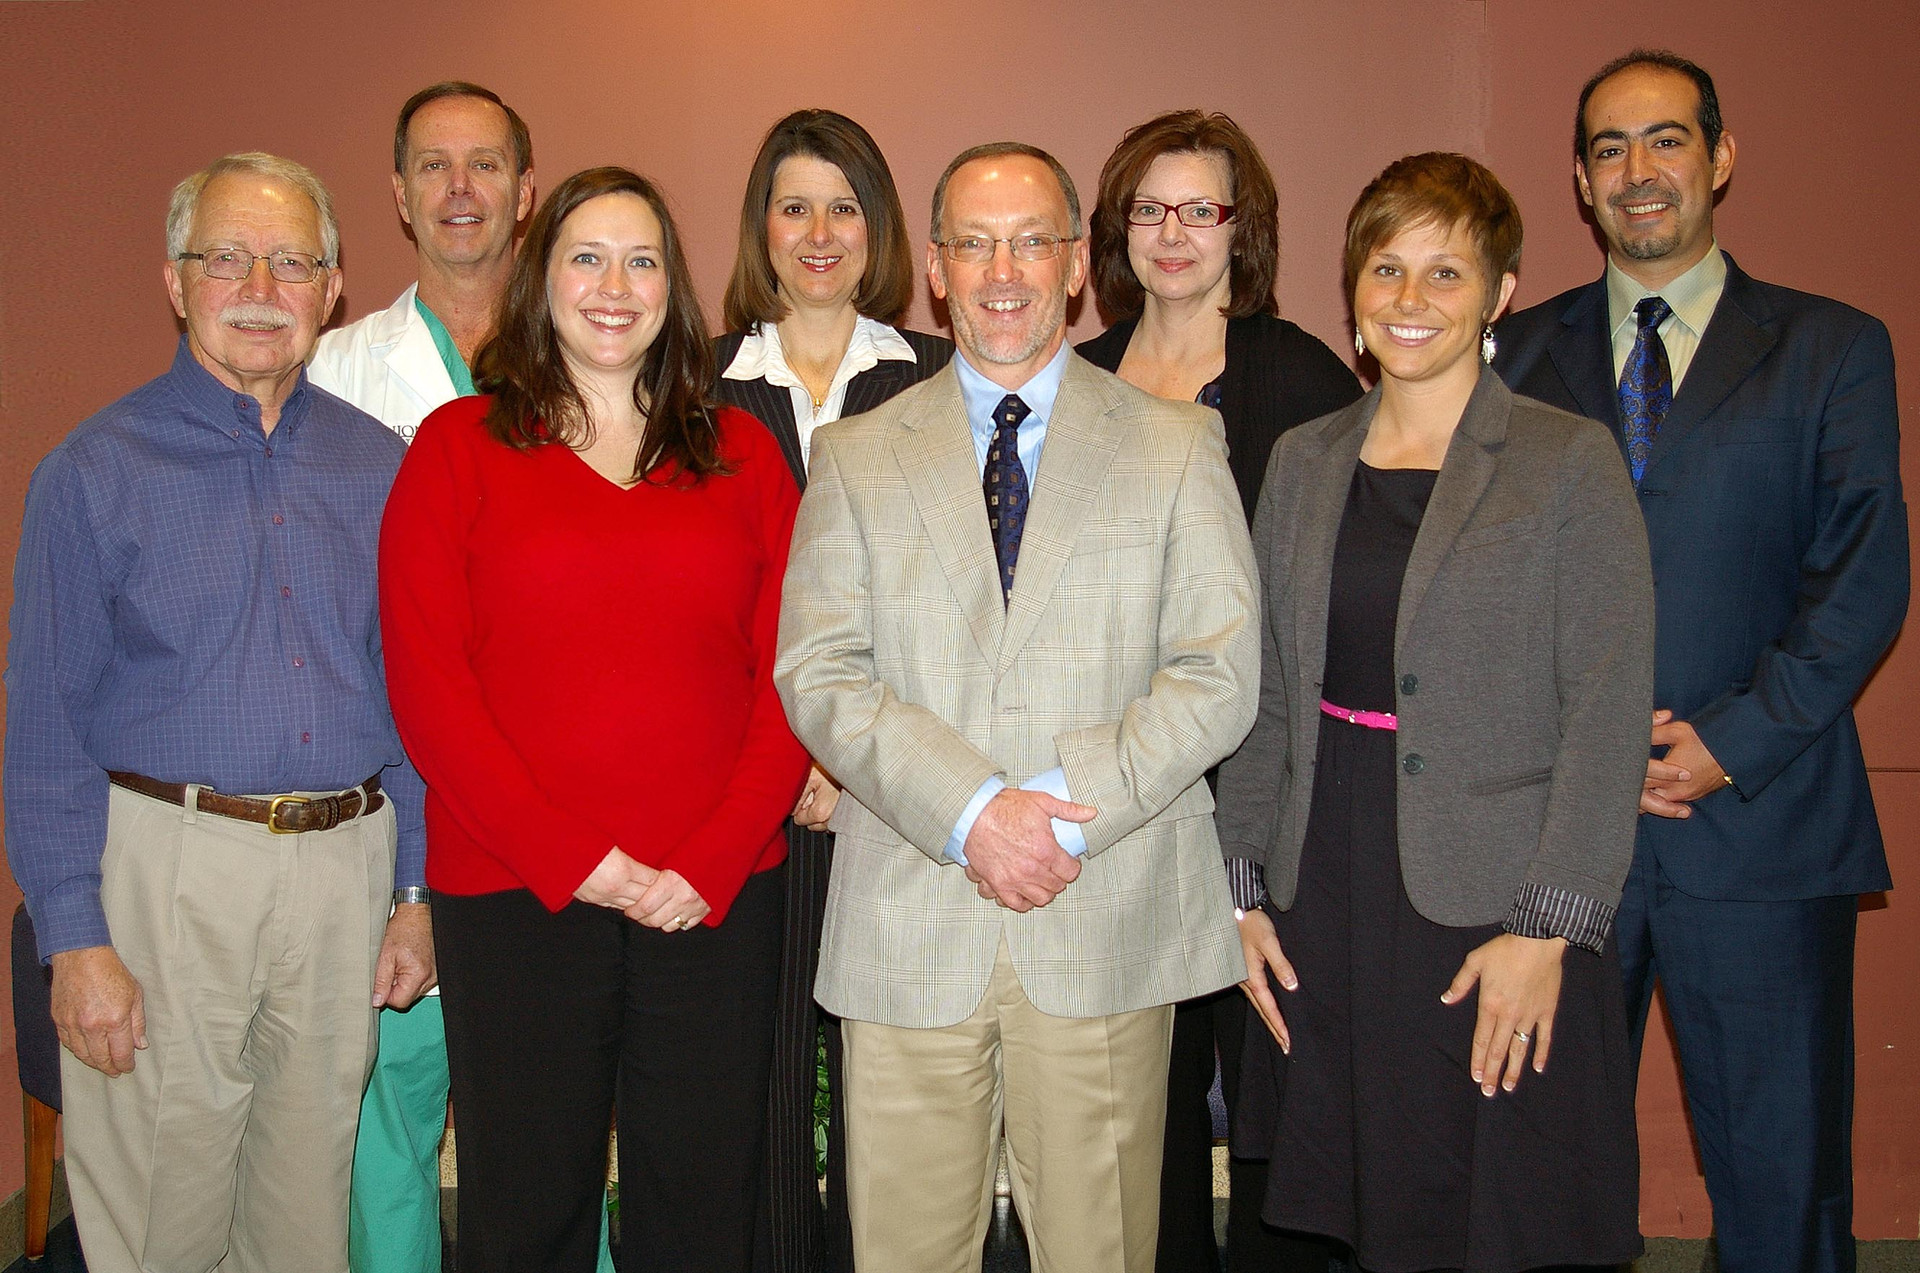 Dr. Buchler and the Lugar Center staff